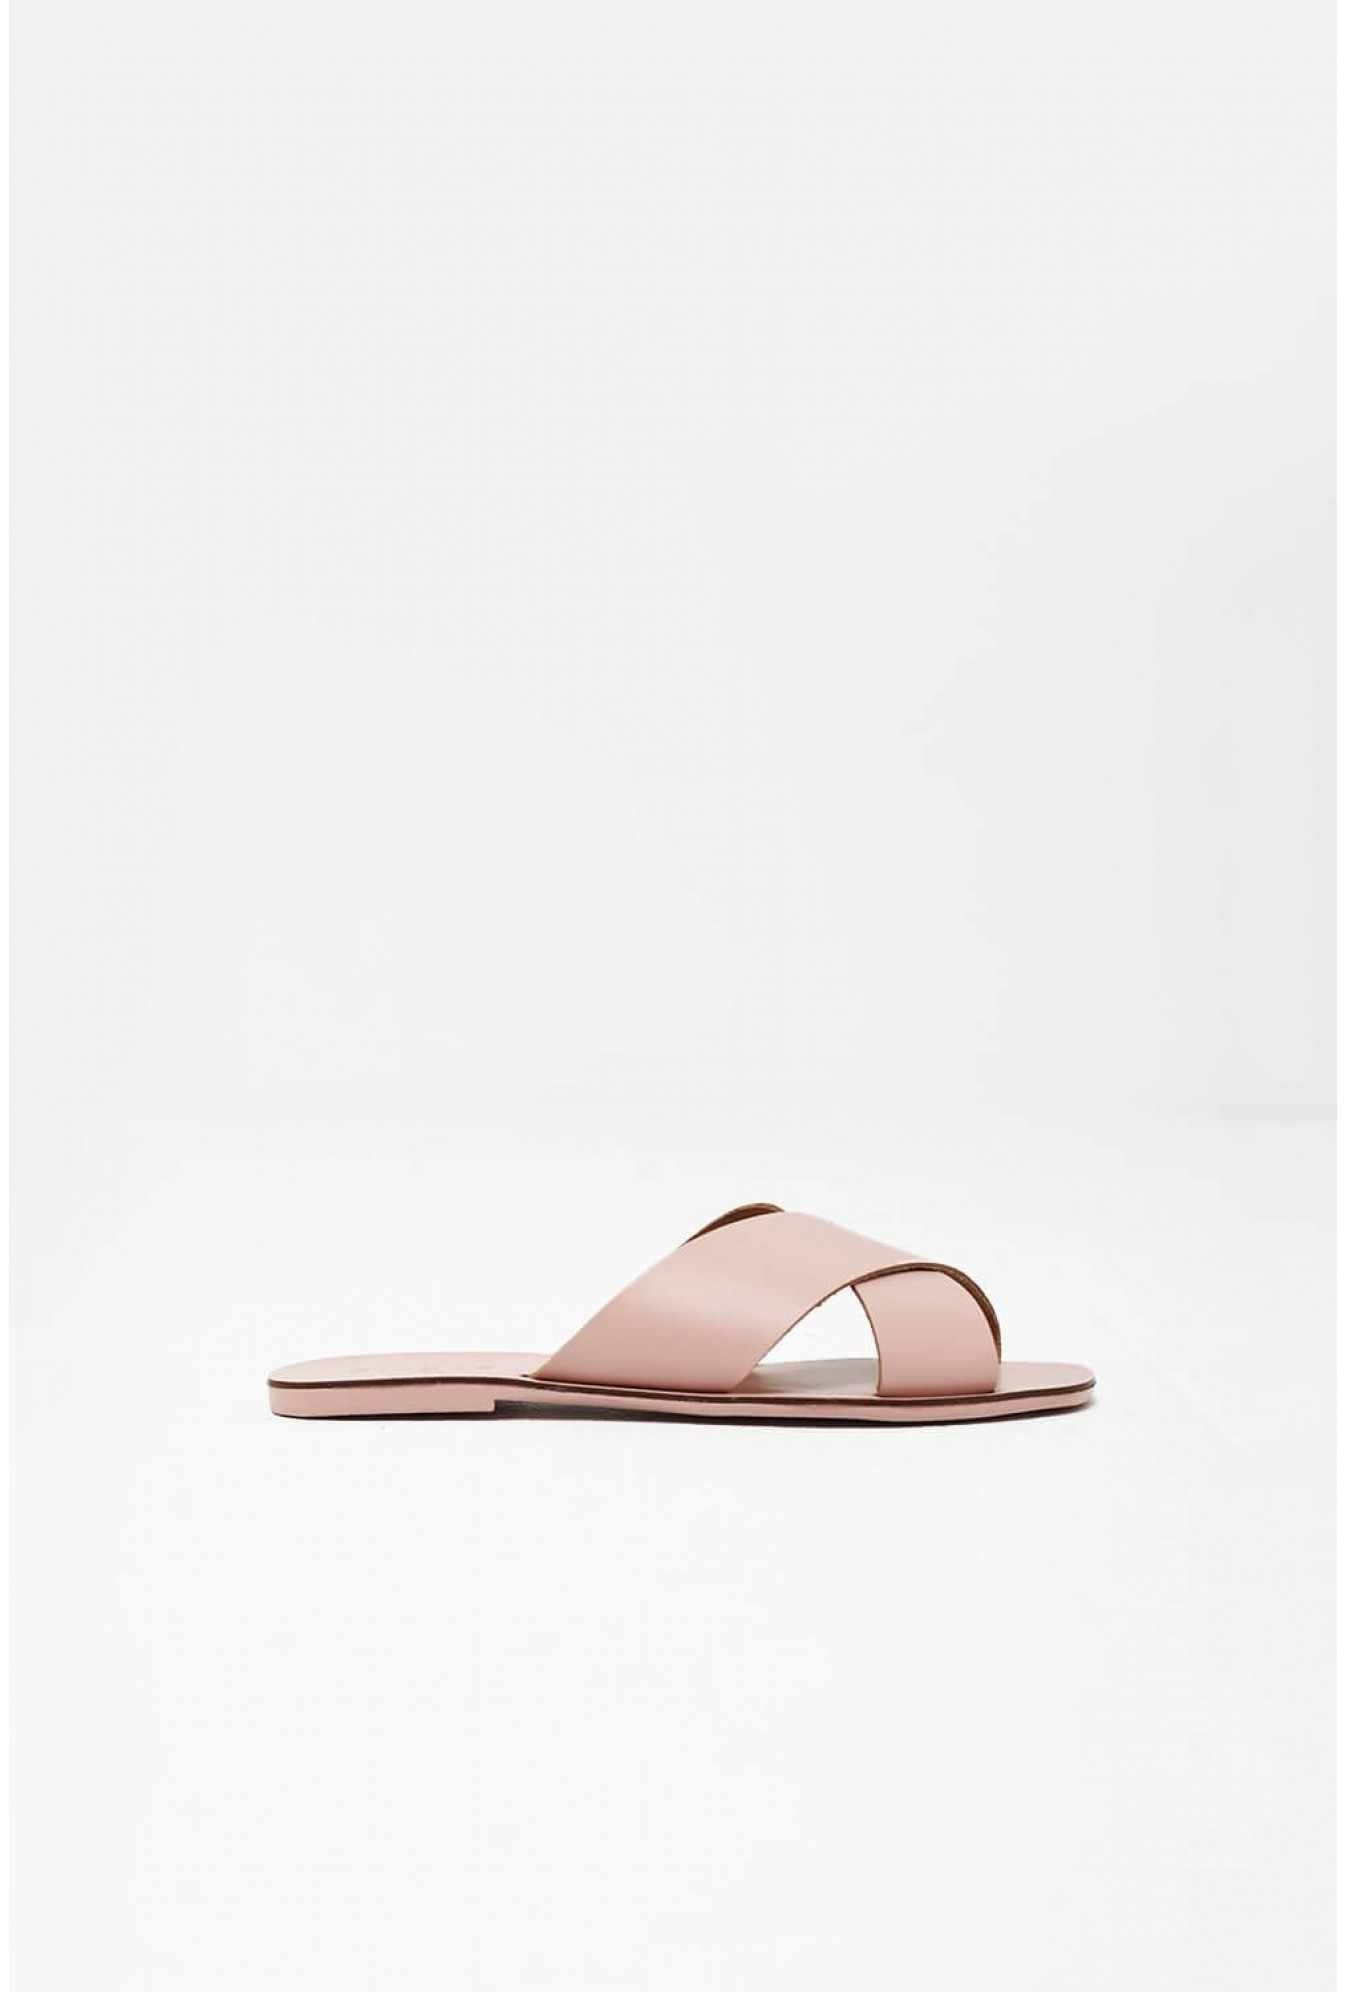 414533981900 More Views. CHARA Leather Sandal in Blush Pink